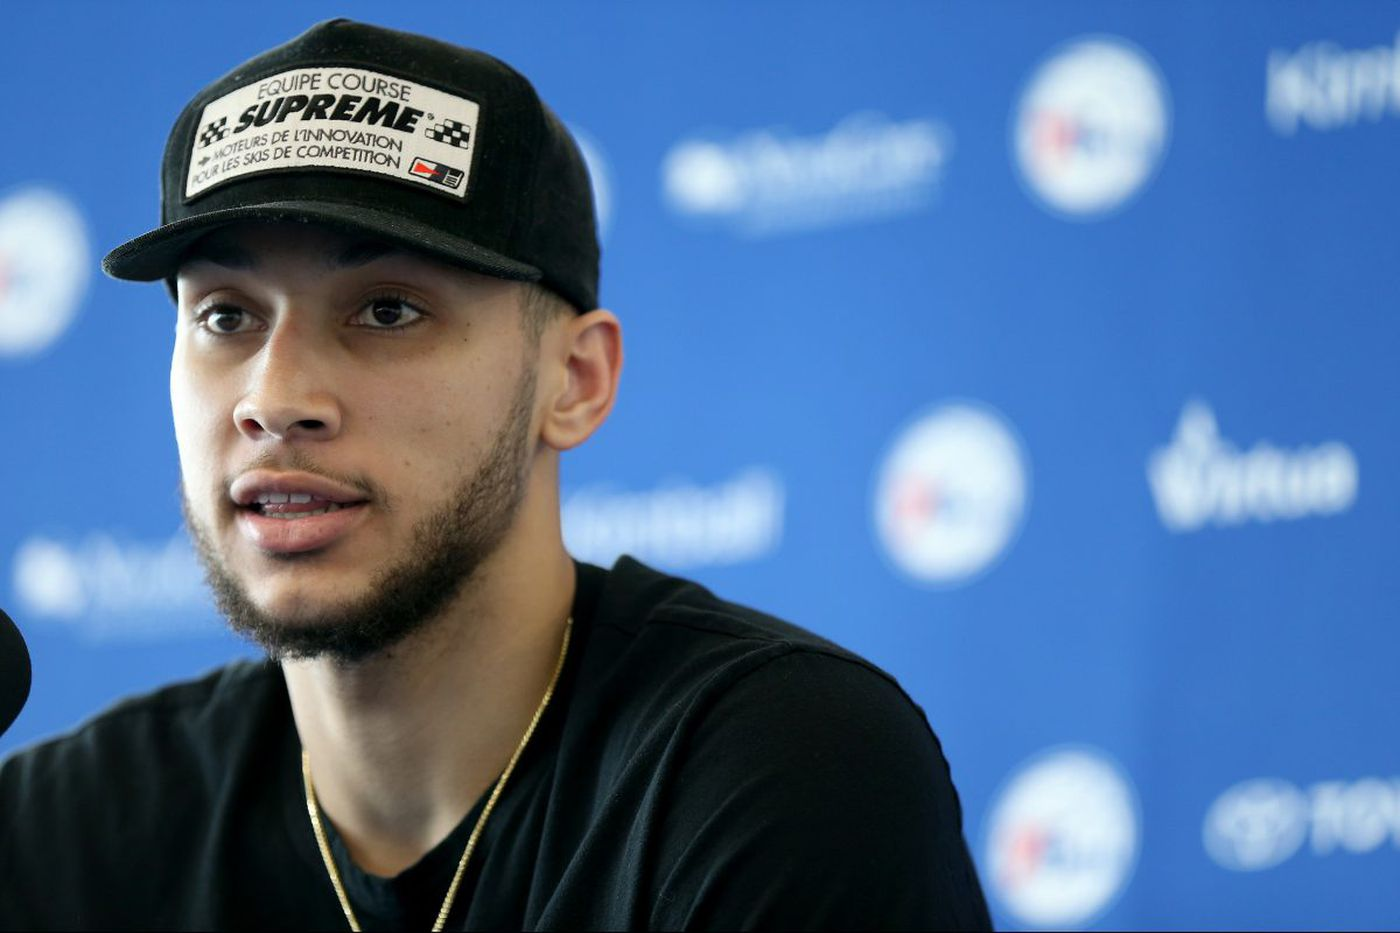 Sixers' Ben Simmons dating Kendall Jenner